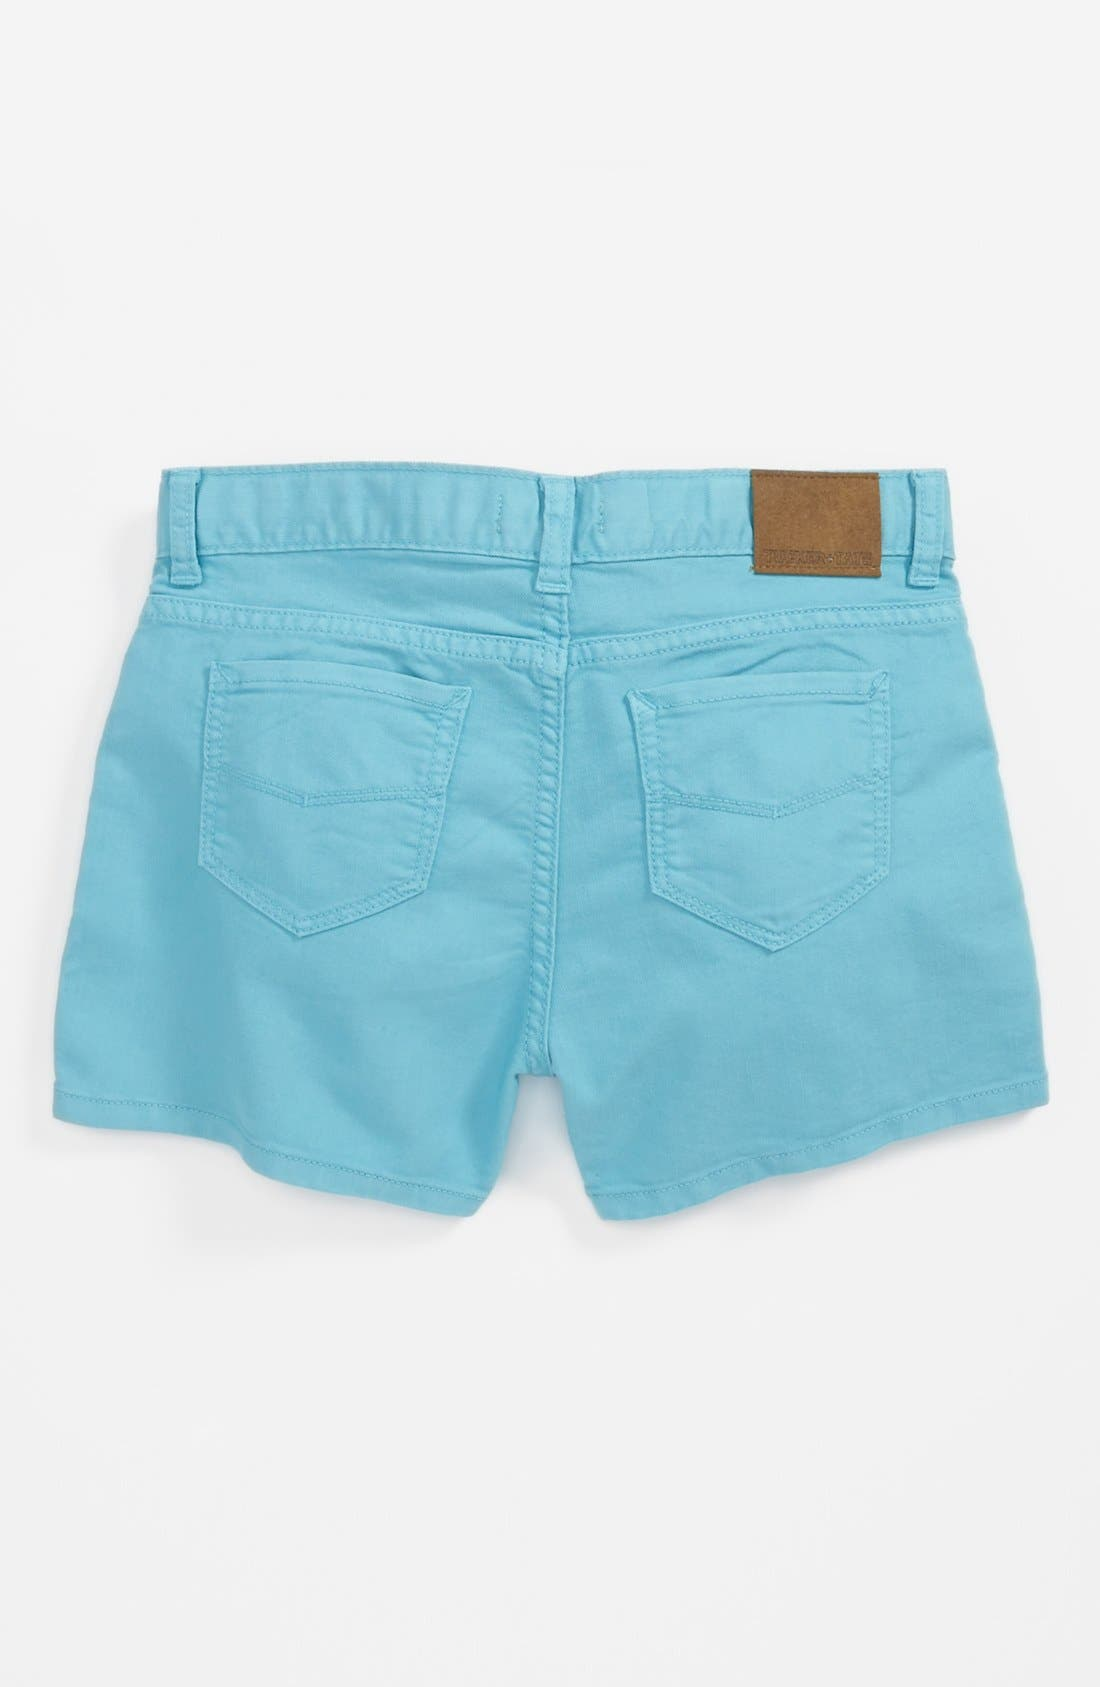 Main Image - Tucker + Tate 'Abbie' Denim Shorts (Big Girls)